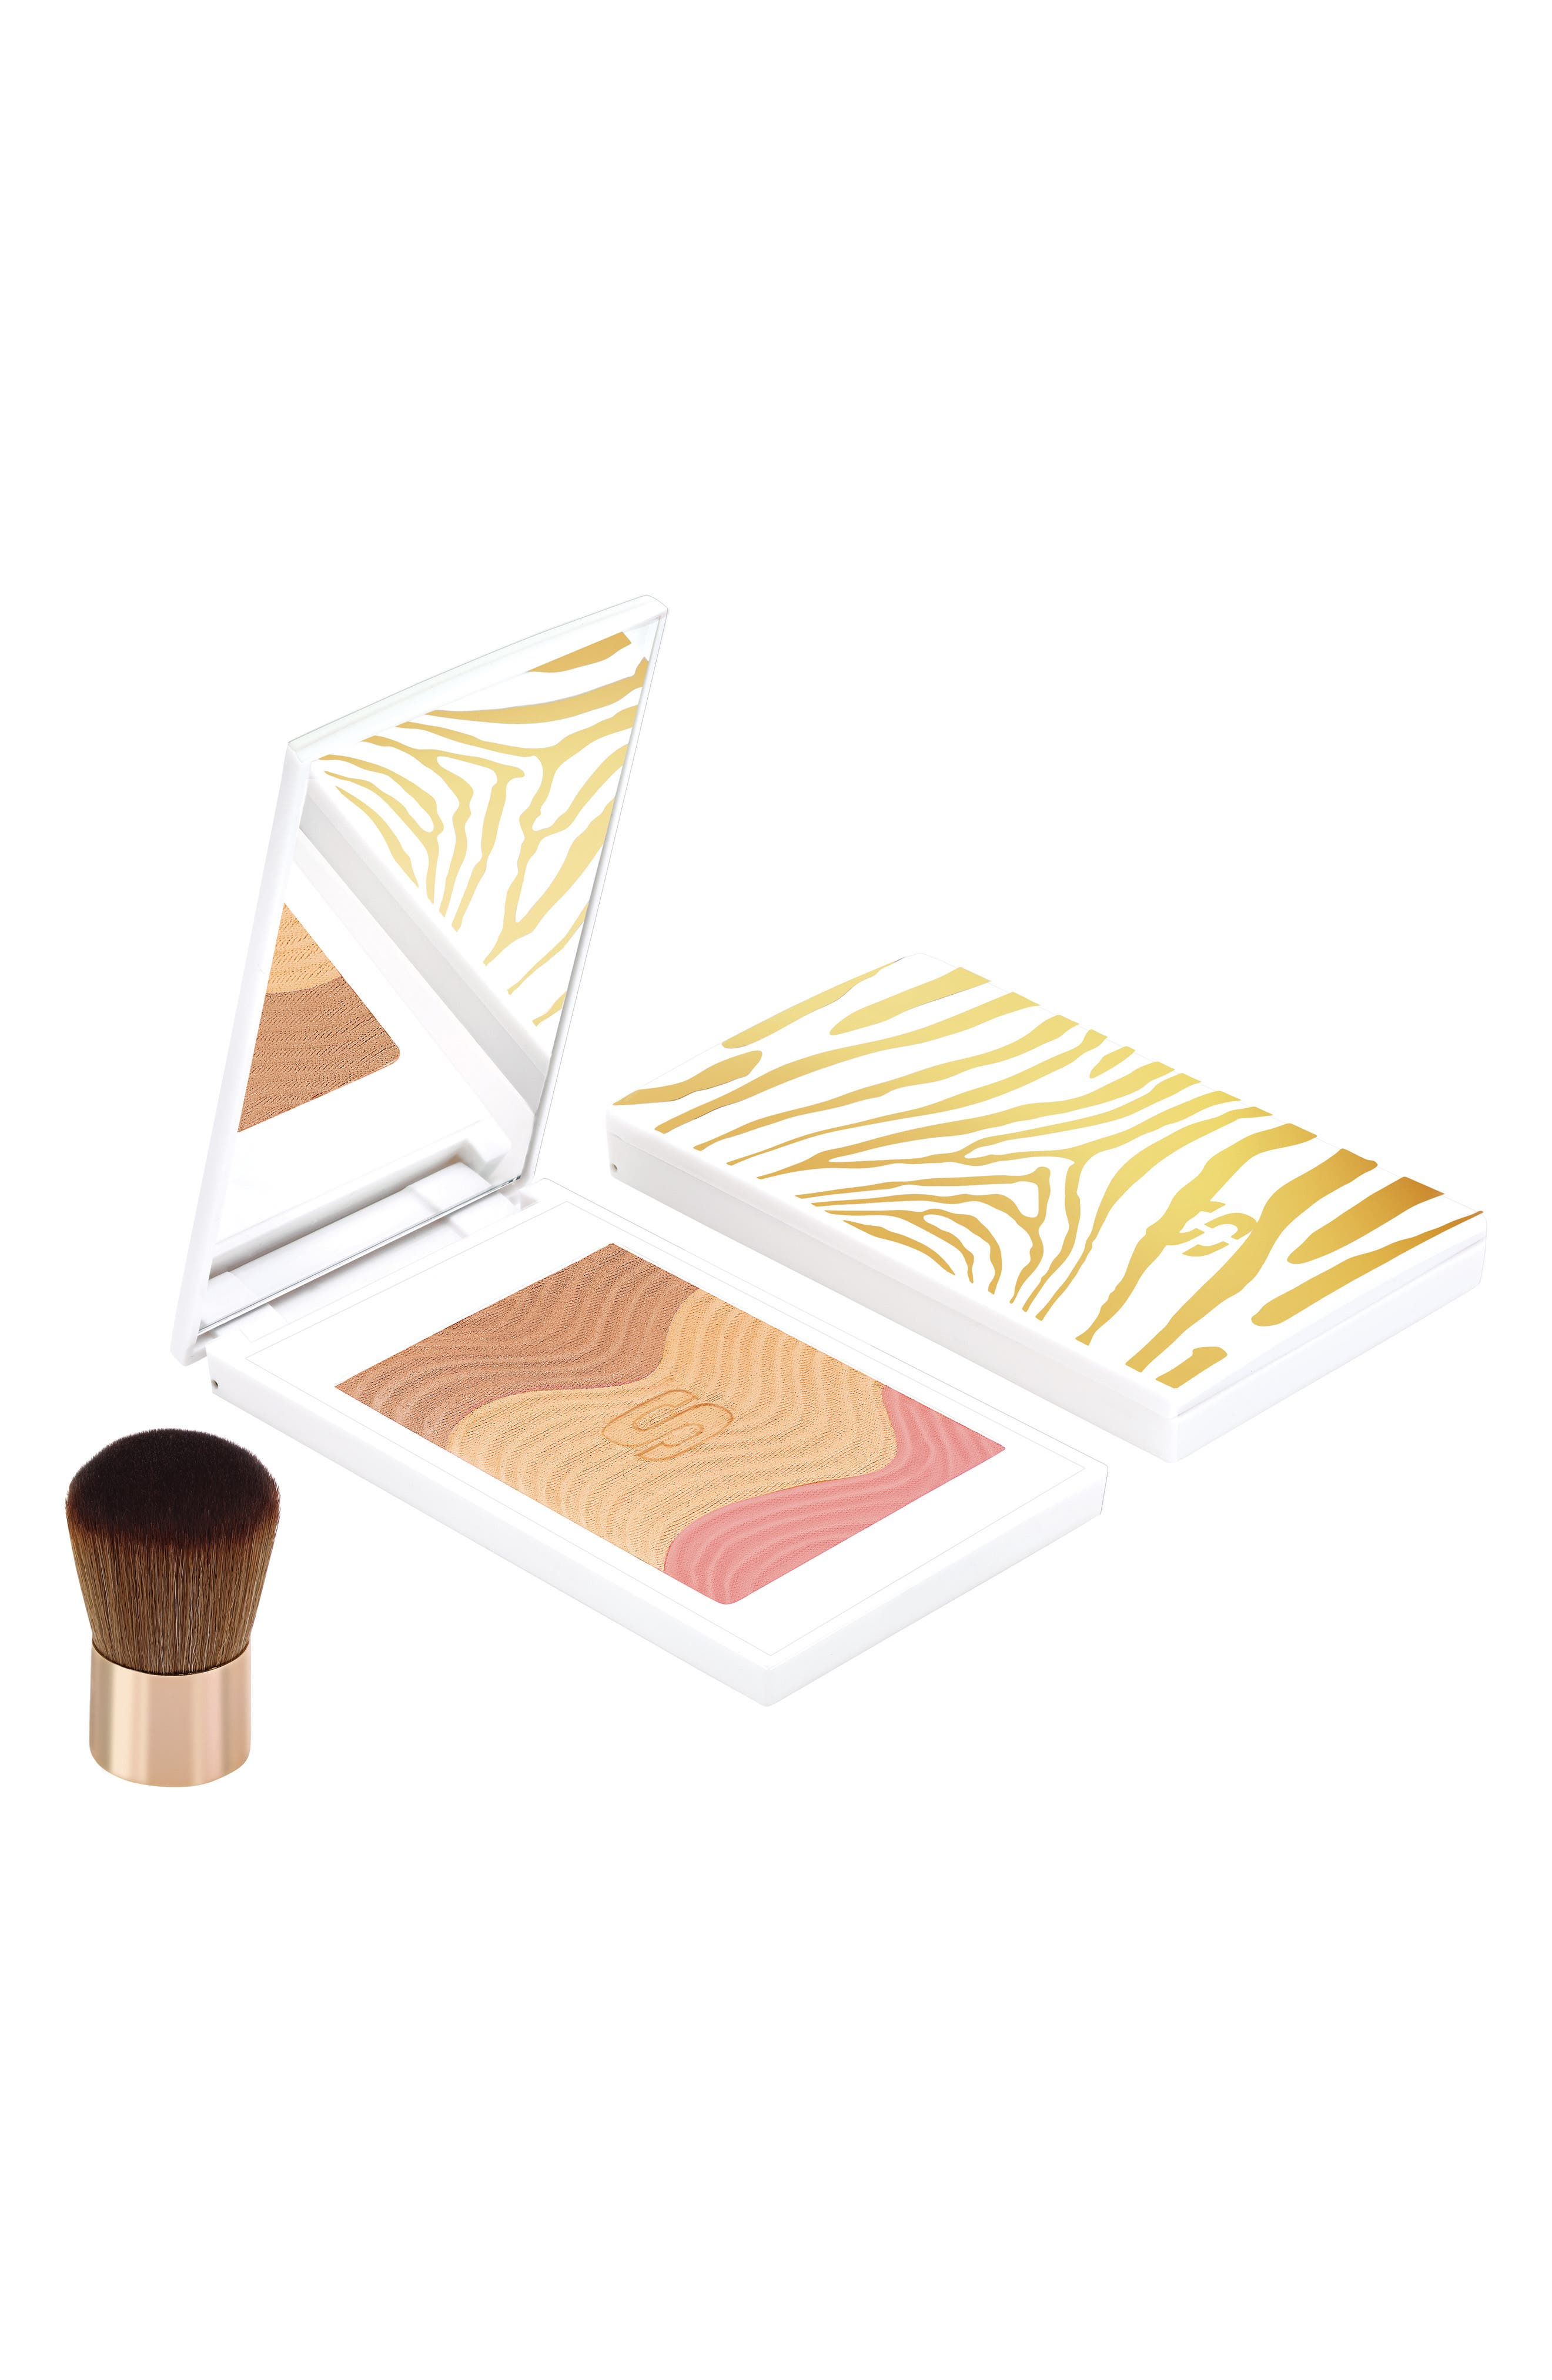 What it is: A creamy powder that provides a unique sensory experience to create a customizable sun-kissed look. Who it\\\'s for: All skin types. What it does: The wave design comprises two golden beige shades for customizing the sun effect and a blush shade to add freshness and brightness. Its imperceptible texture melts onto the skin like a cream for a smoothing, perfectly even result with no powdery effect. It blends perfectly with your skin and